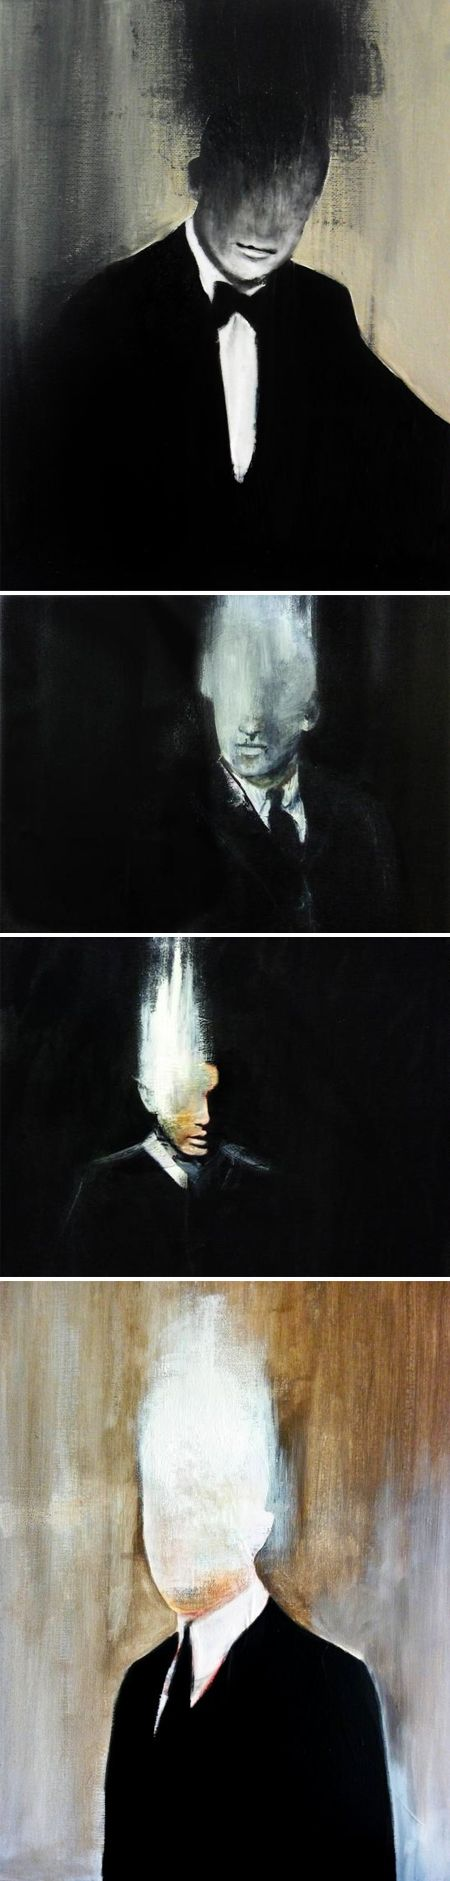 Faceless men by carole bremaud via the jealous curator